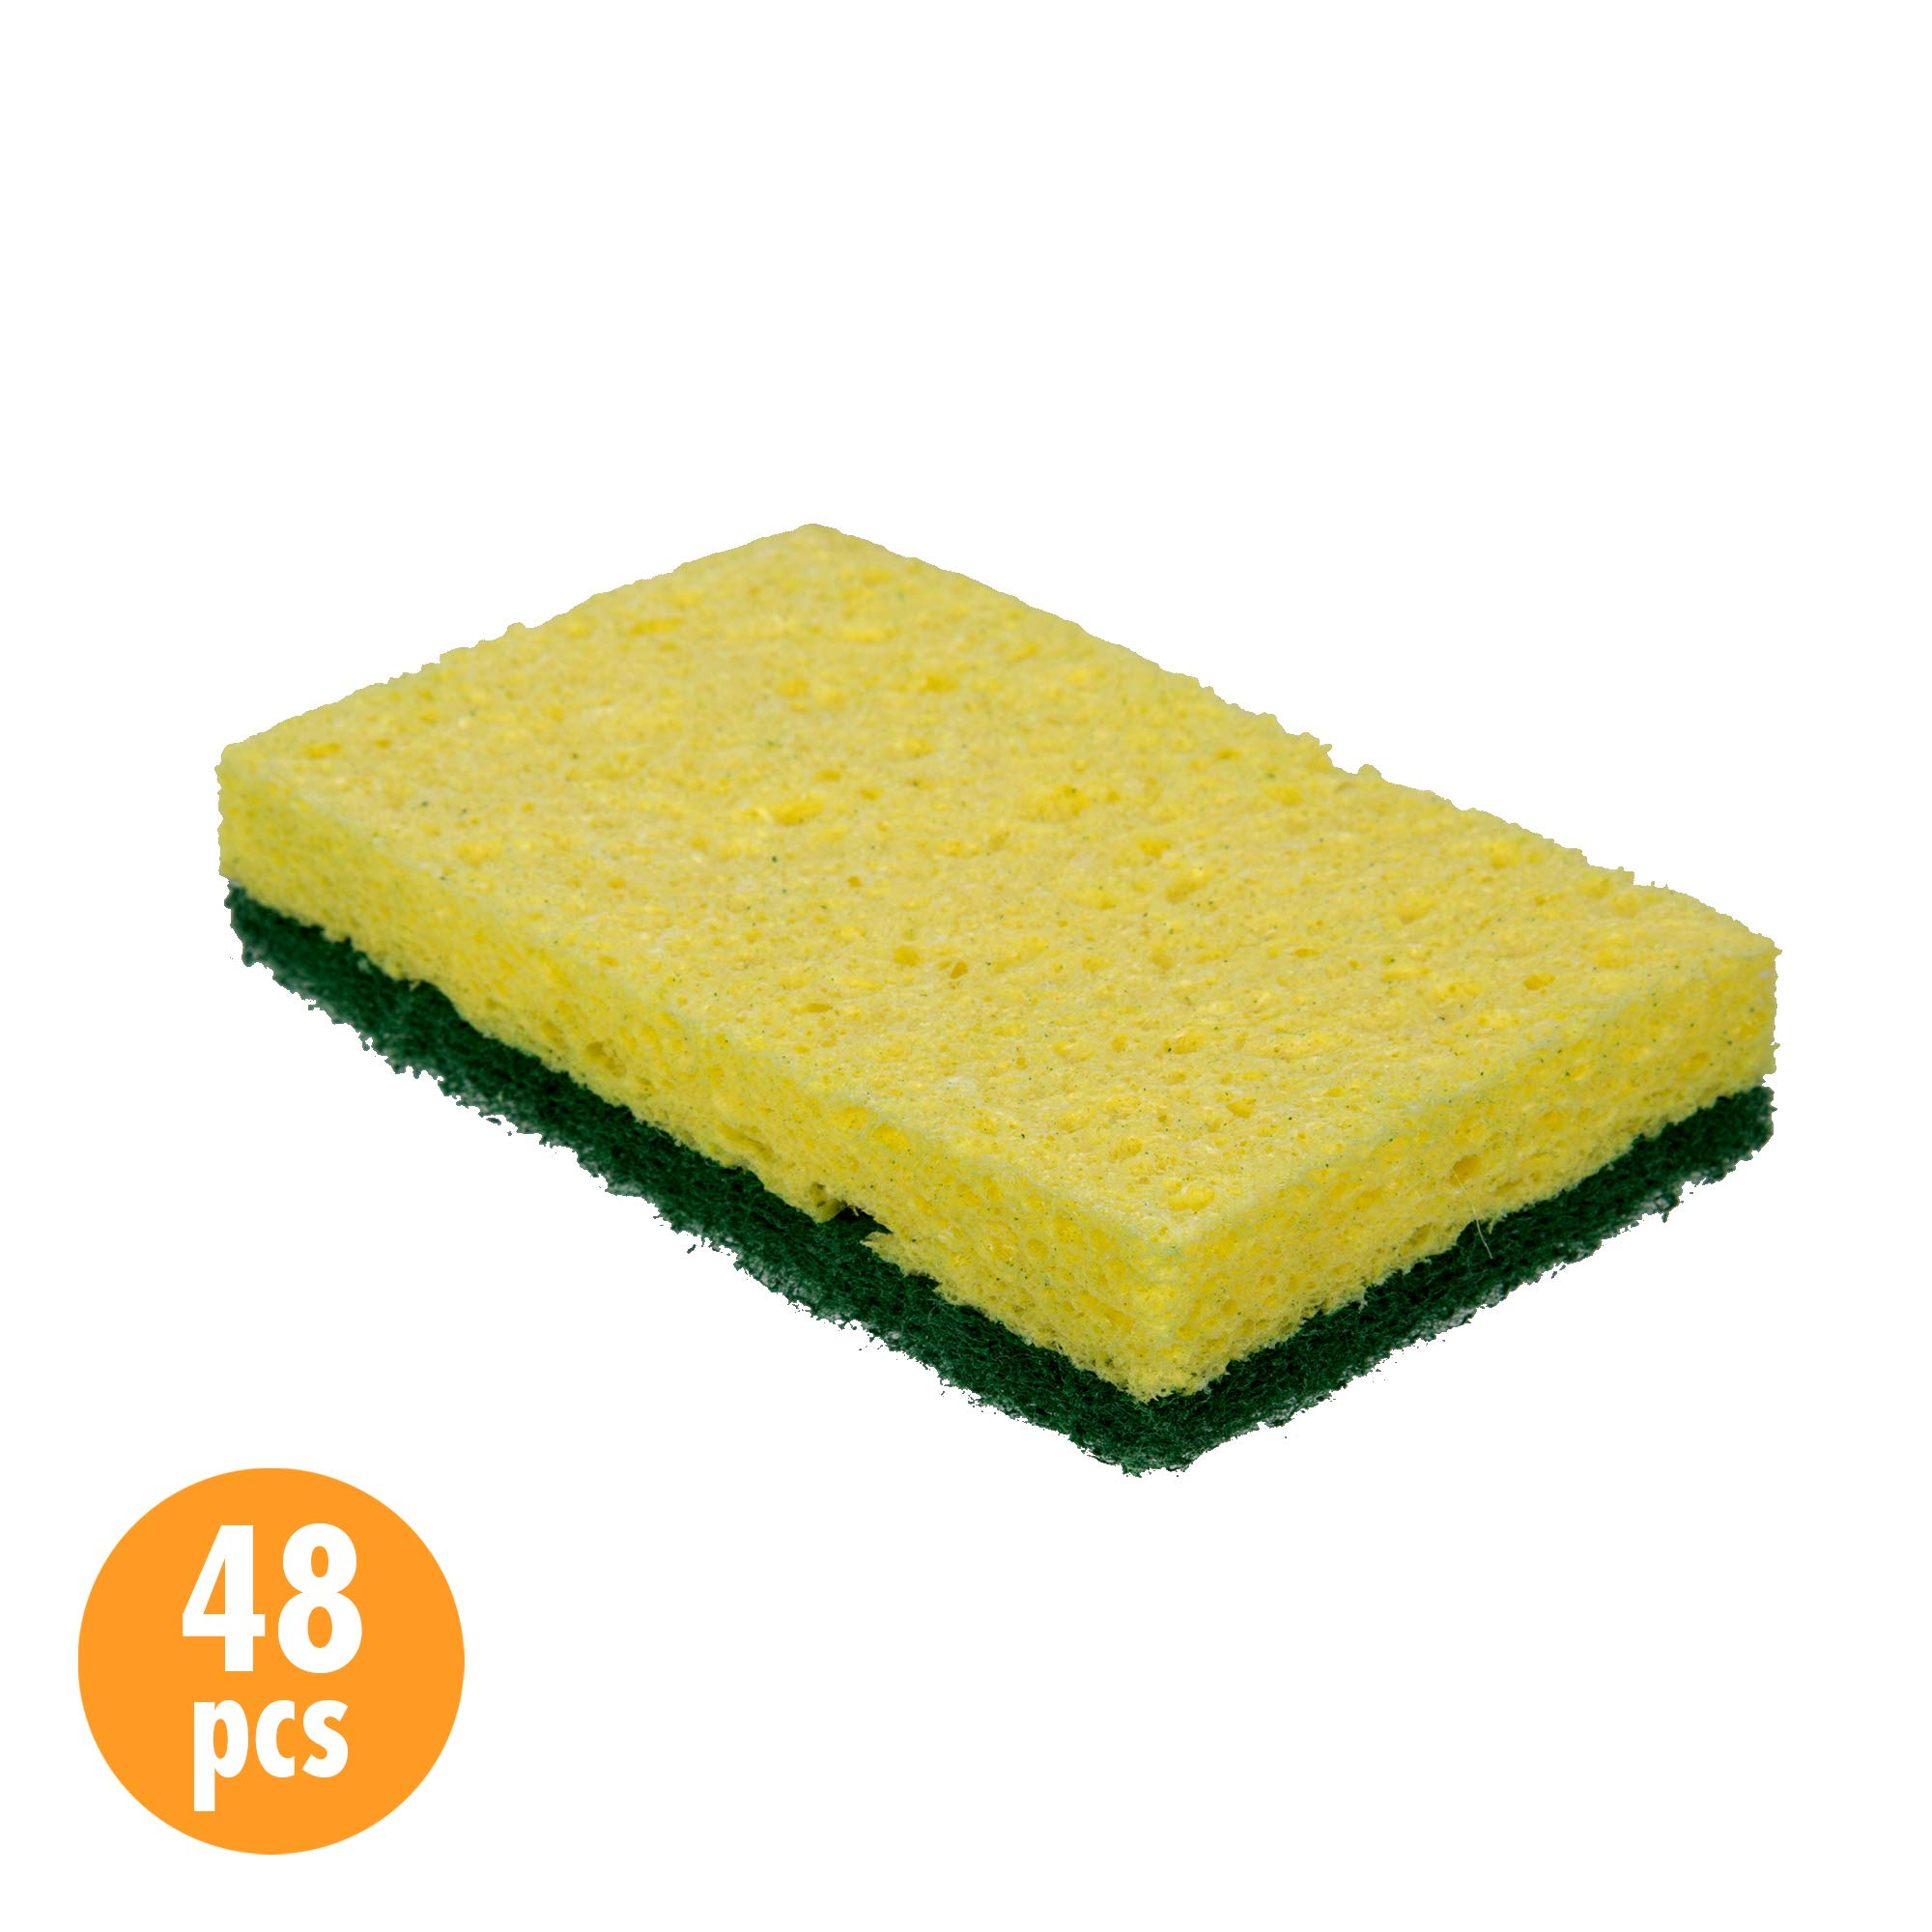 CTG Cellulose Scrub Sponges 4.25 x 2.75 inches 48 Pieces, Yellow/Green